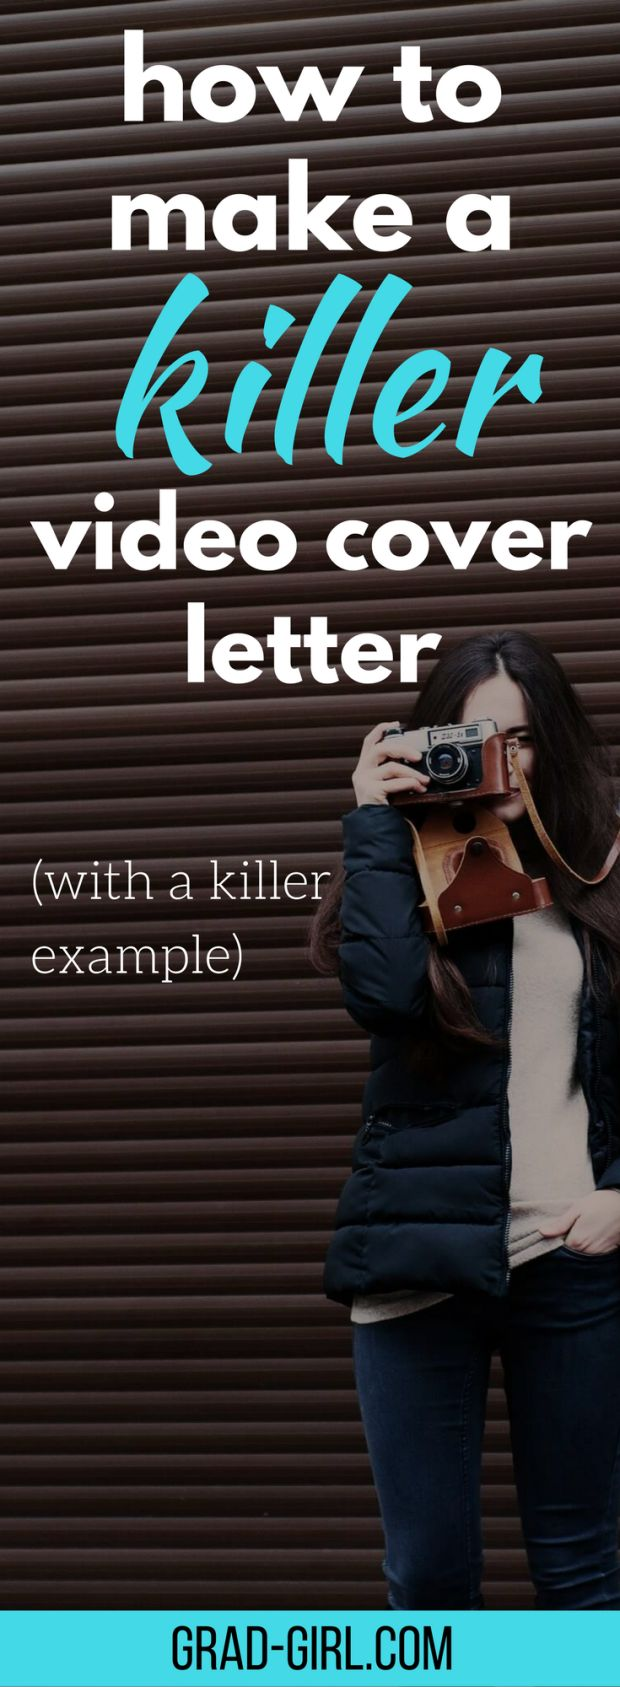 Video cover letter part of your job description? Get the steps for how to make a killer video cover letter from start to finish (plus a real example!).